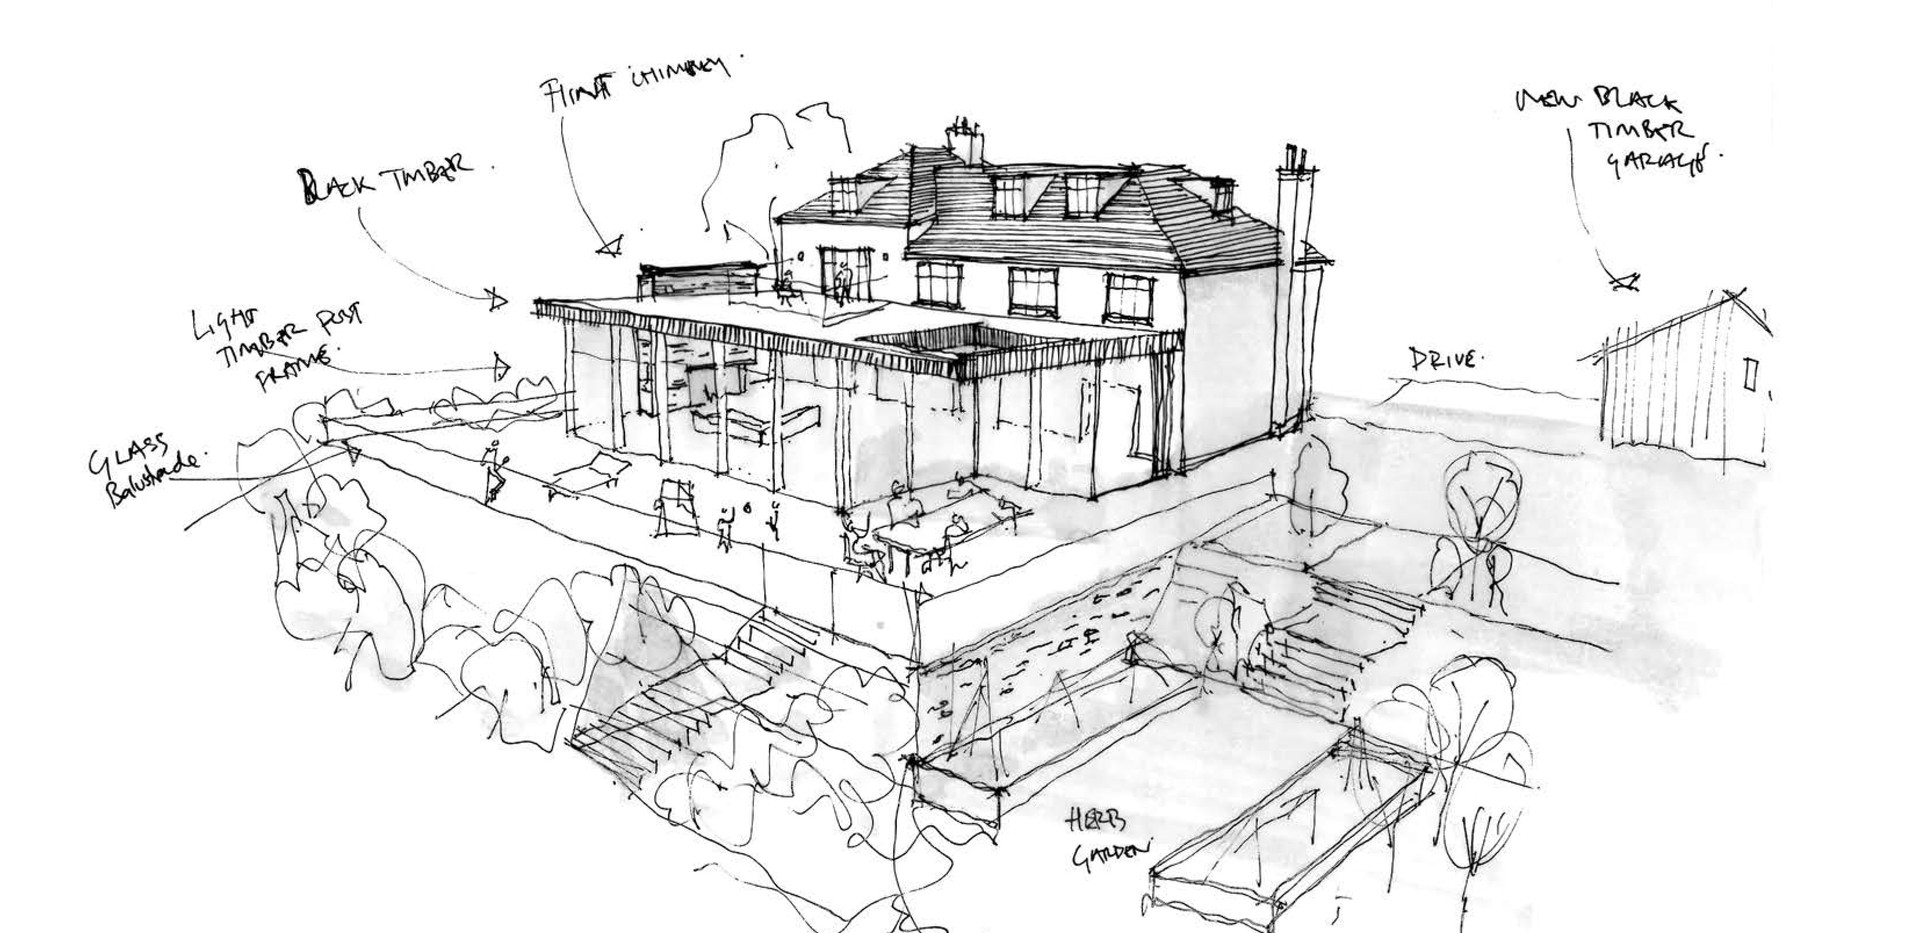 Proposed Addition Sketch